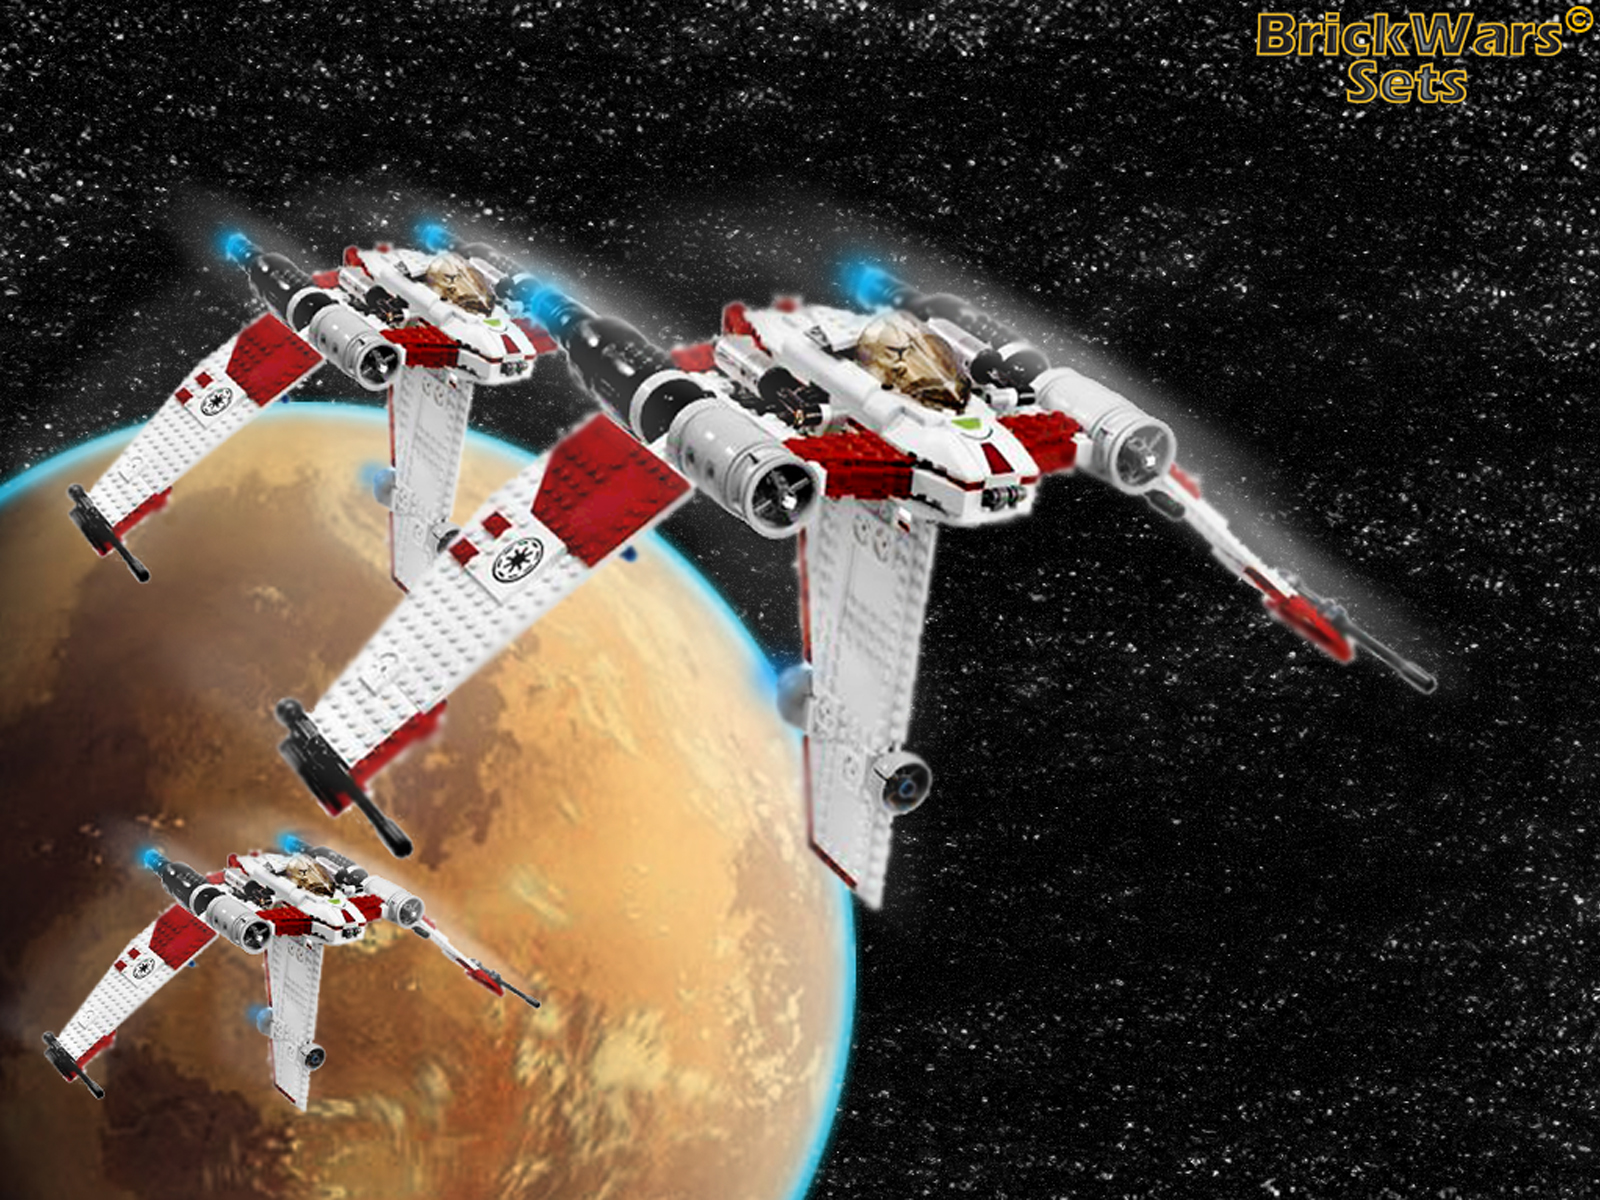 brickwars sets v 19 torrent battalion lego star wars free wallpaper. Black Bedroom Furniture Sets. Home Design Ideas